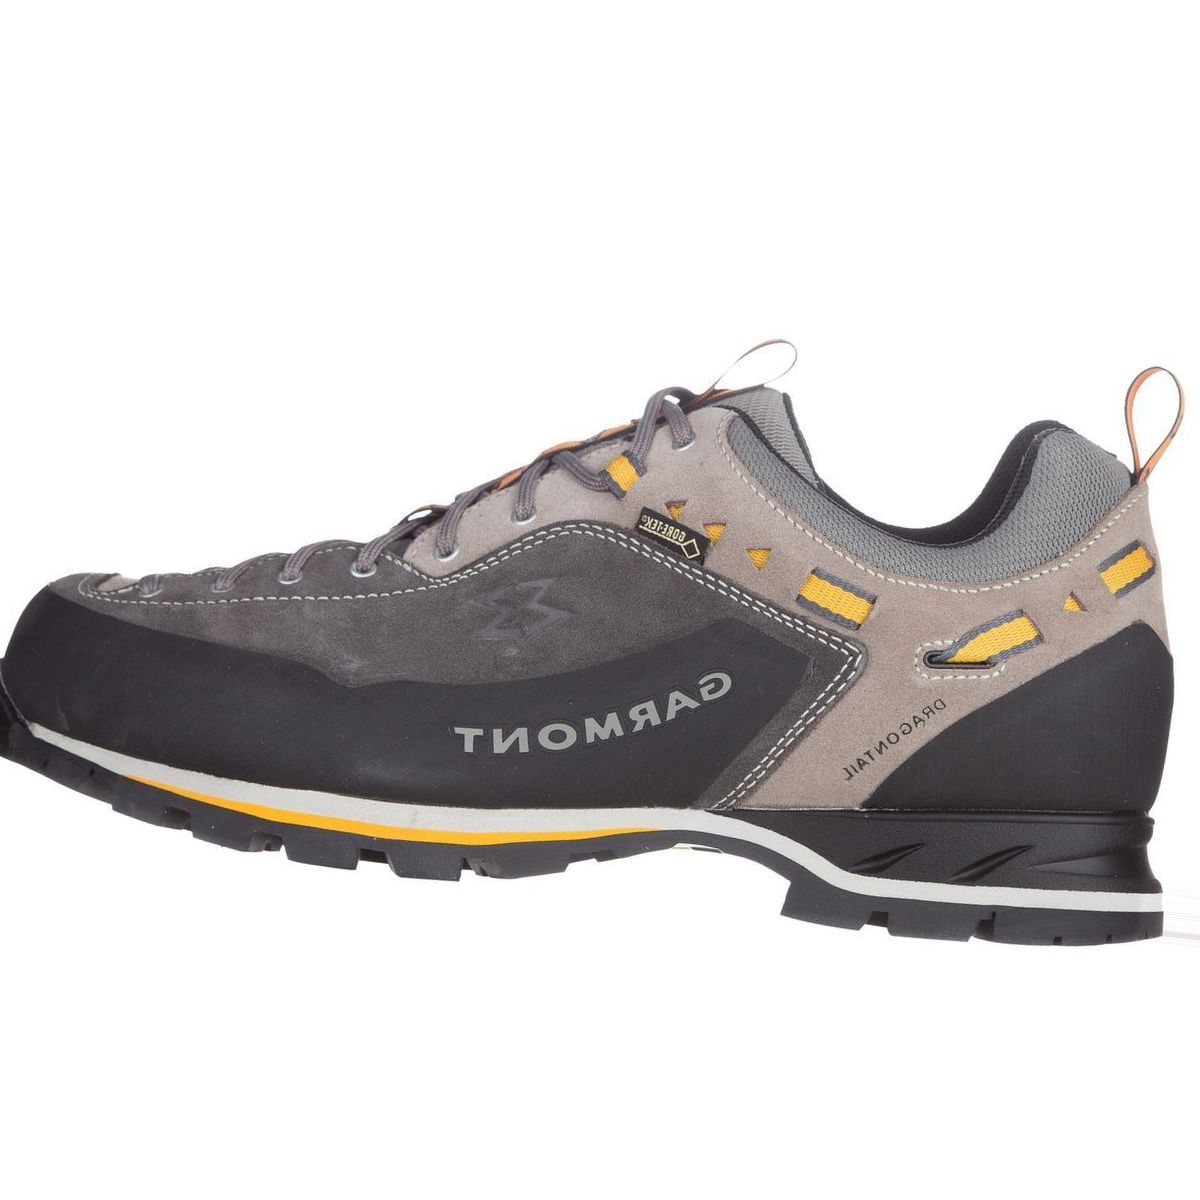 Garmont Dragontail MNT GTX Approach Shoe - Men's